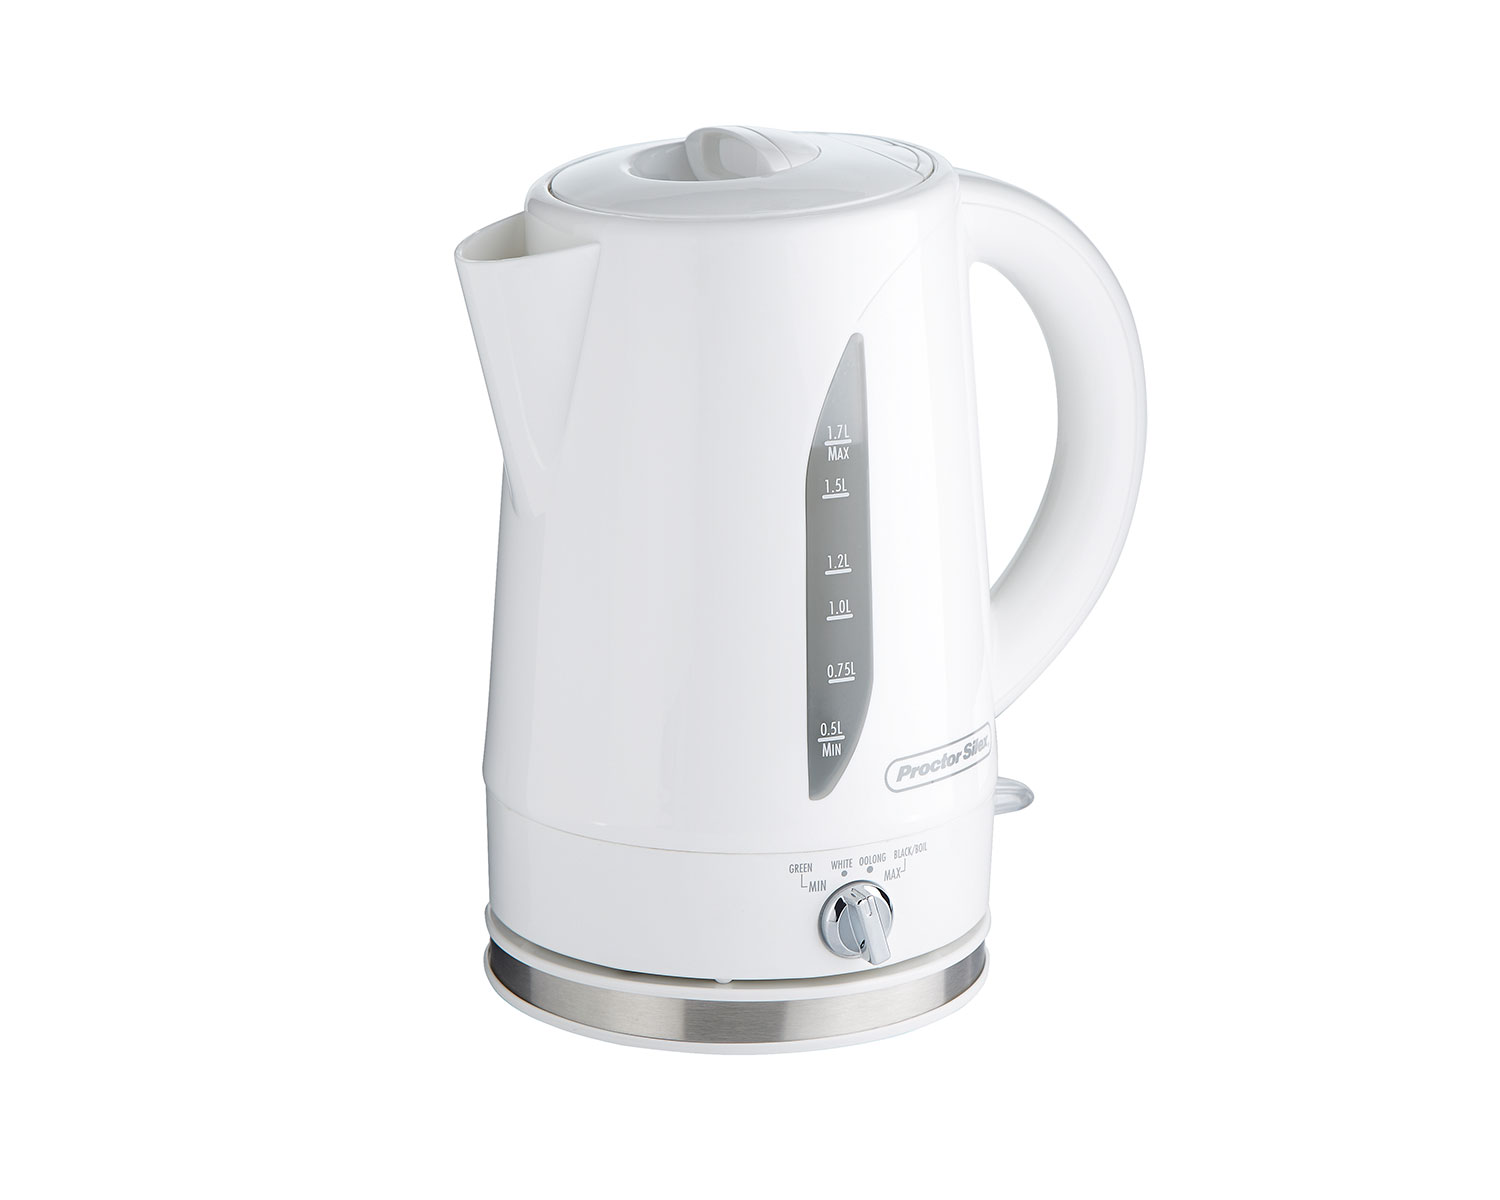 1.7 Liter Variable Temperature Kettle (white)-41007 Small Size